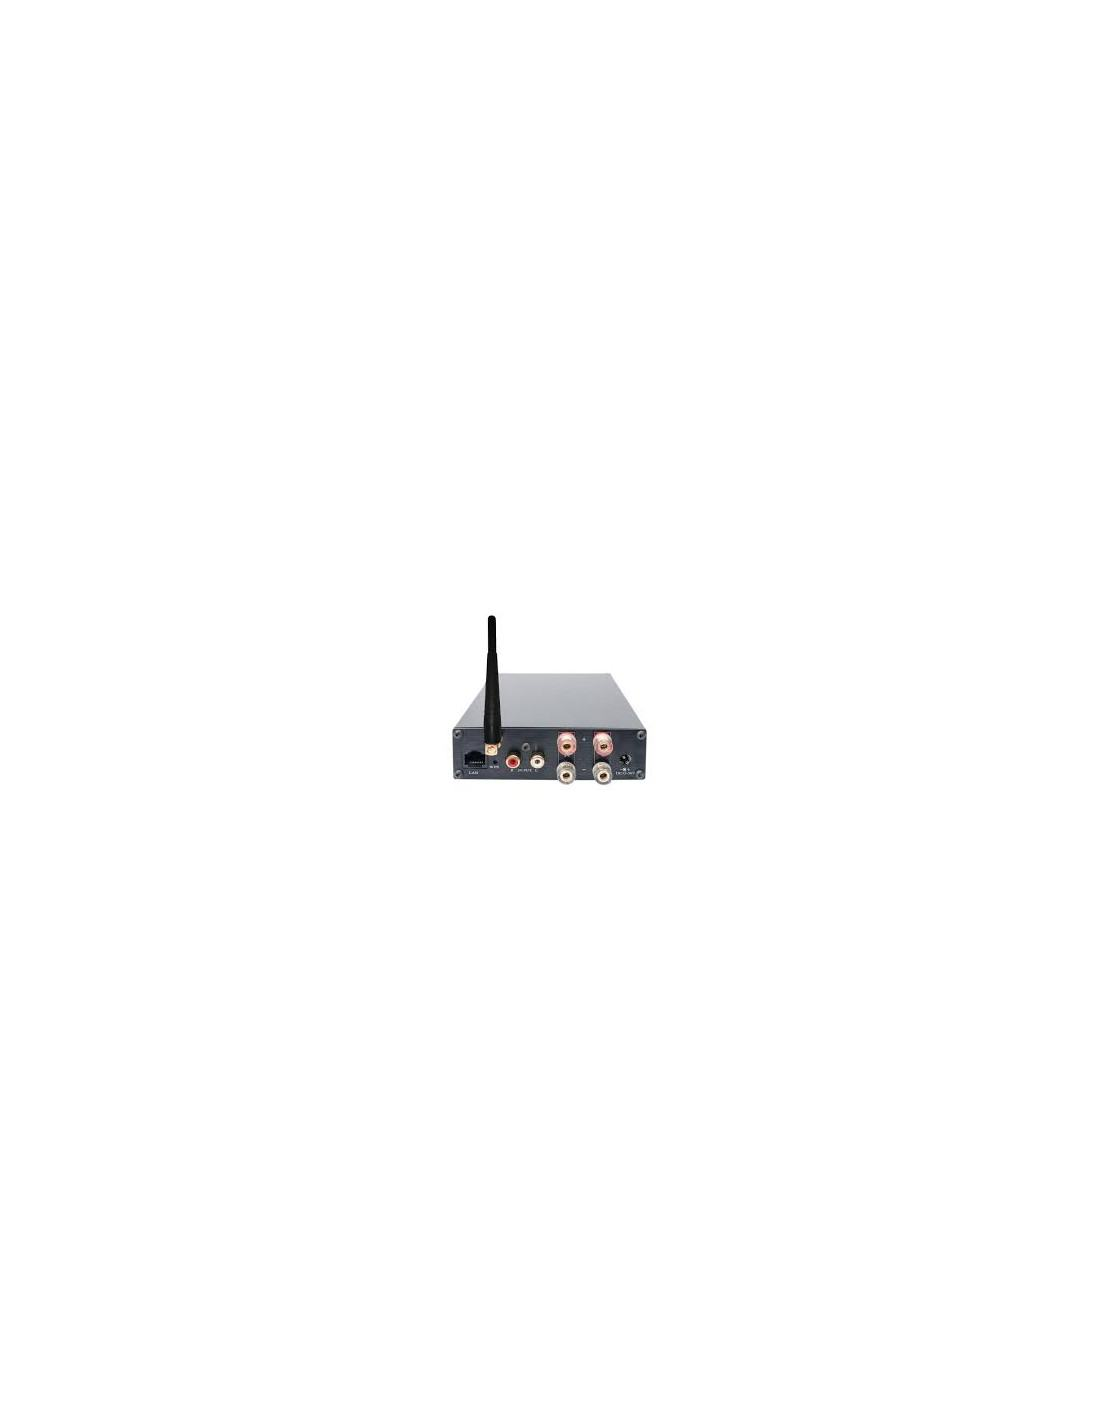 AM160 | Shop Multi Room Audio Streaming And More